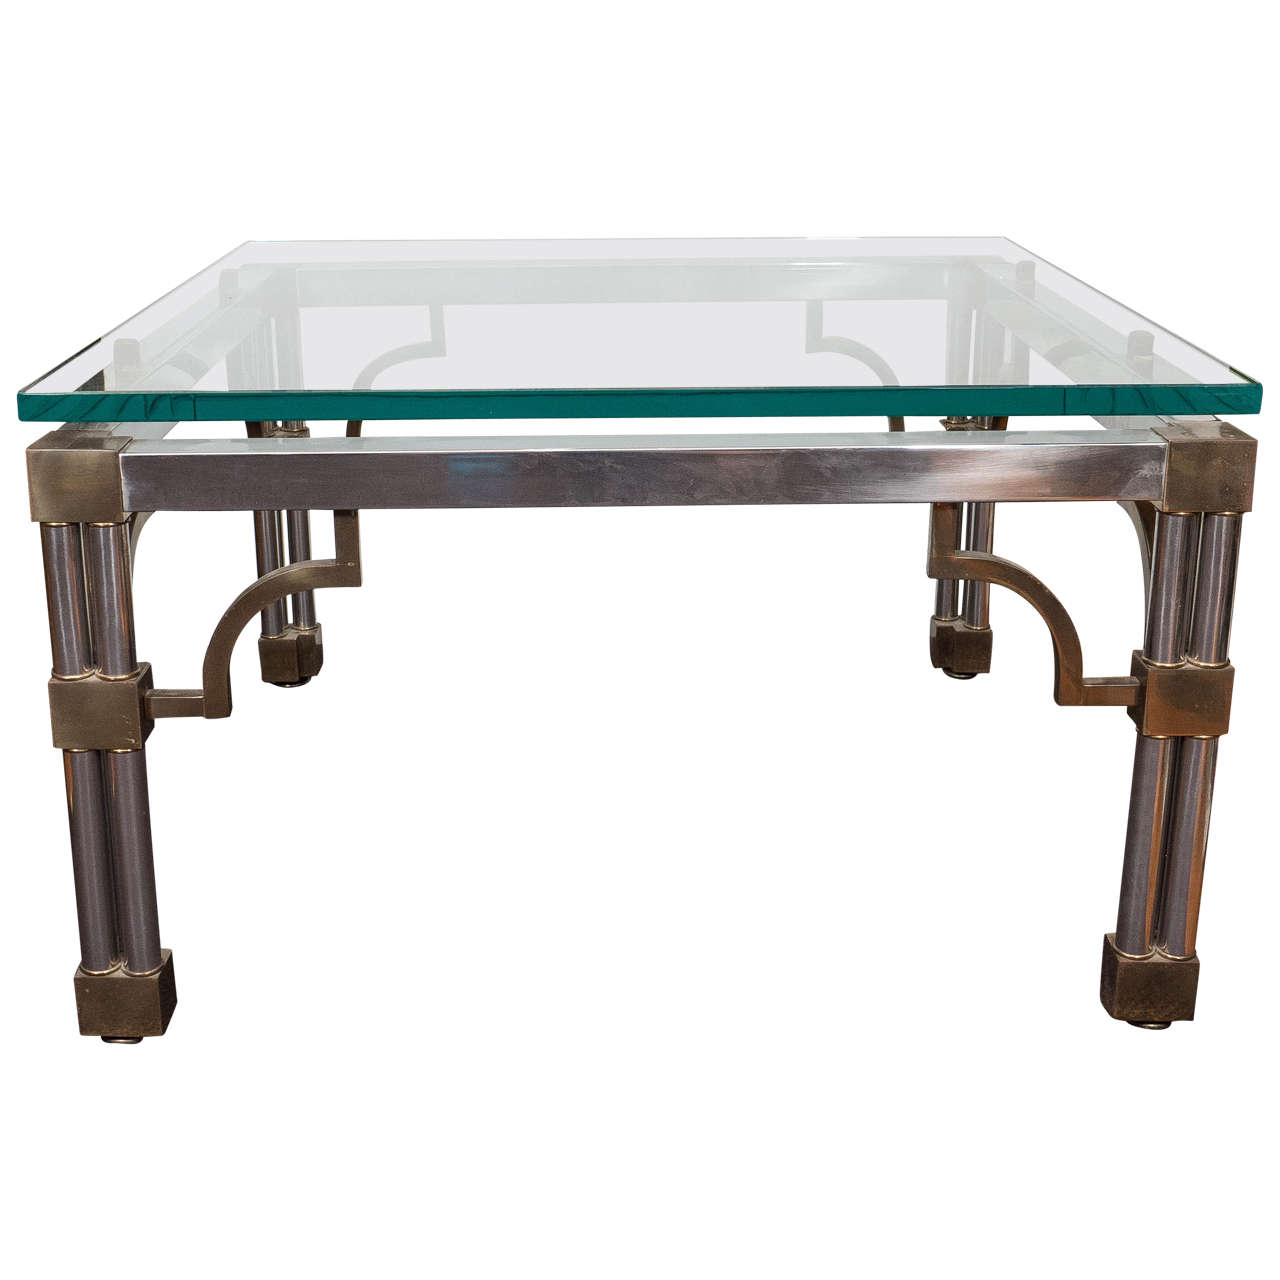 Asian Inspired Glass Top Chrome Coffee Table With Brass Detail For Sale At 1stdibs